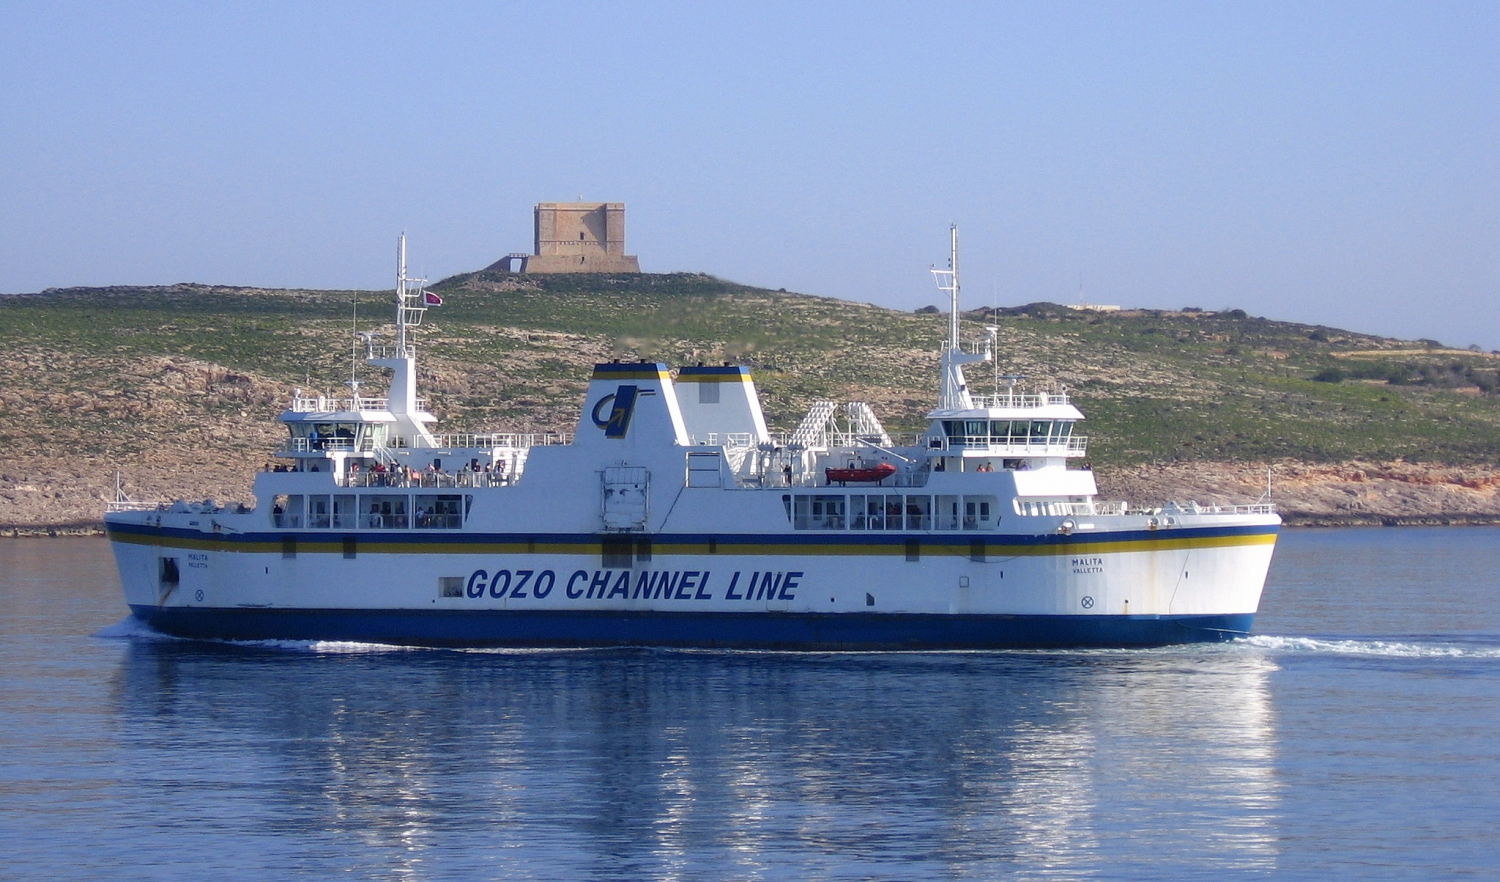 Gozo Channel Ferry Timetable